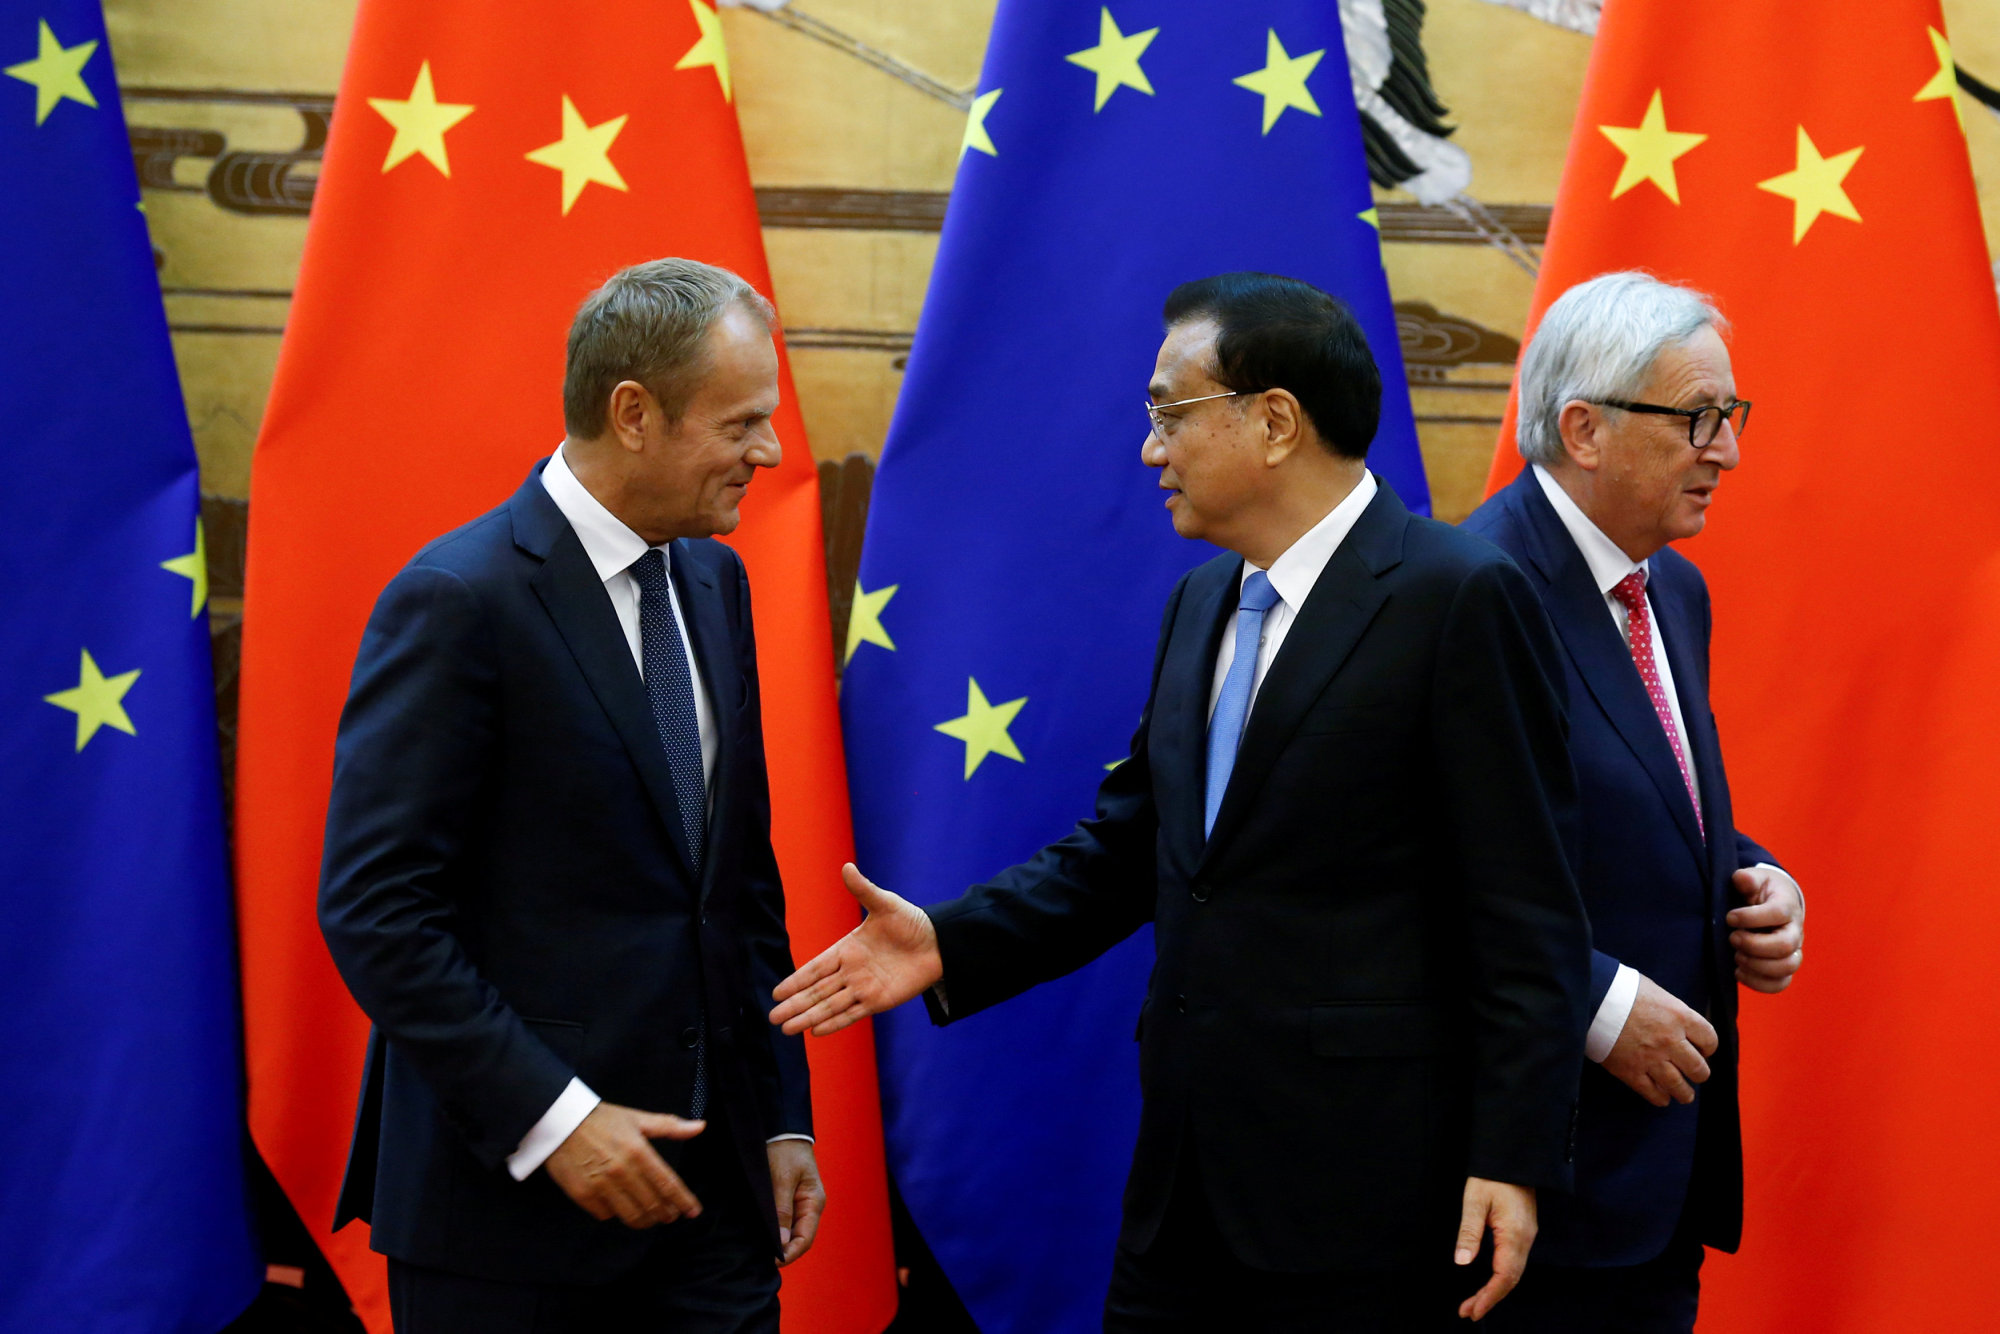 European Council President Donald Tusk, Chinese Premier Li Keqiang (center) and European Commission President Jean-Claude Juncker attend a signing ceremony at the Great Hall of the People in Beijing last July. | REUTERS